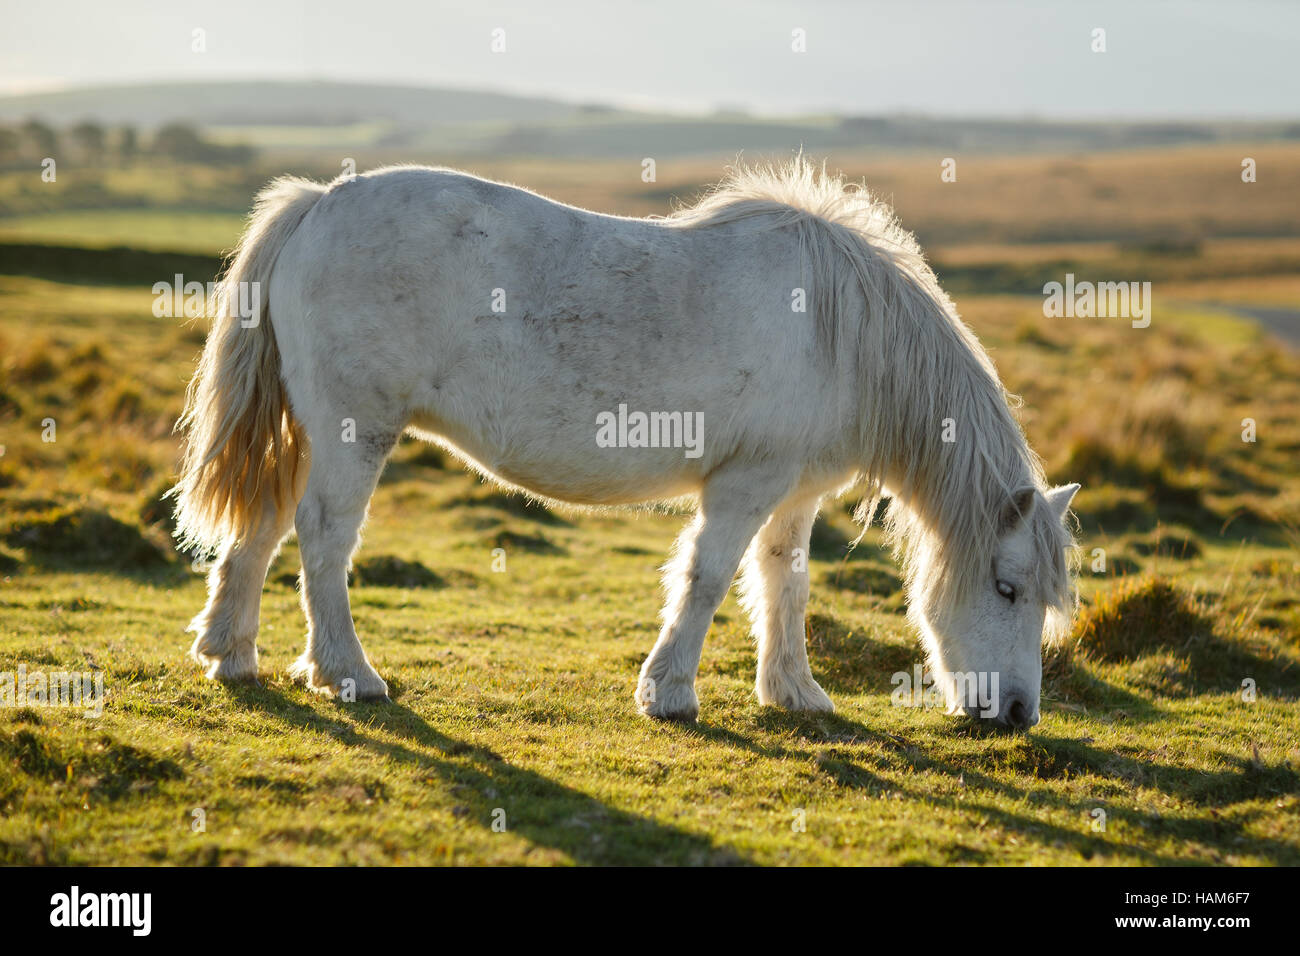 Poney Dartmoor dans les champs Photo Stock